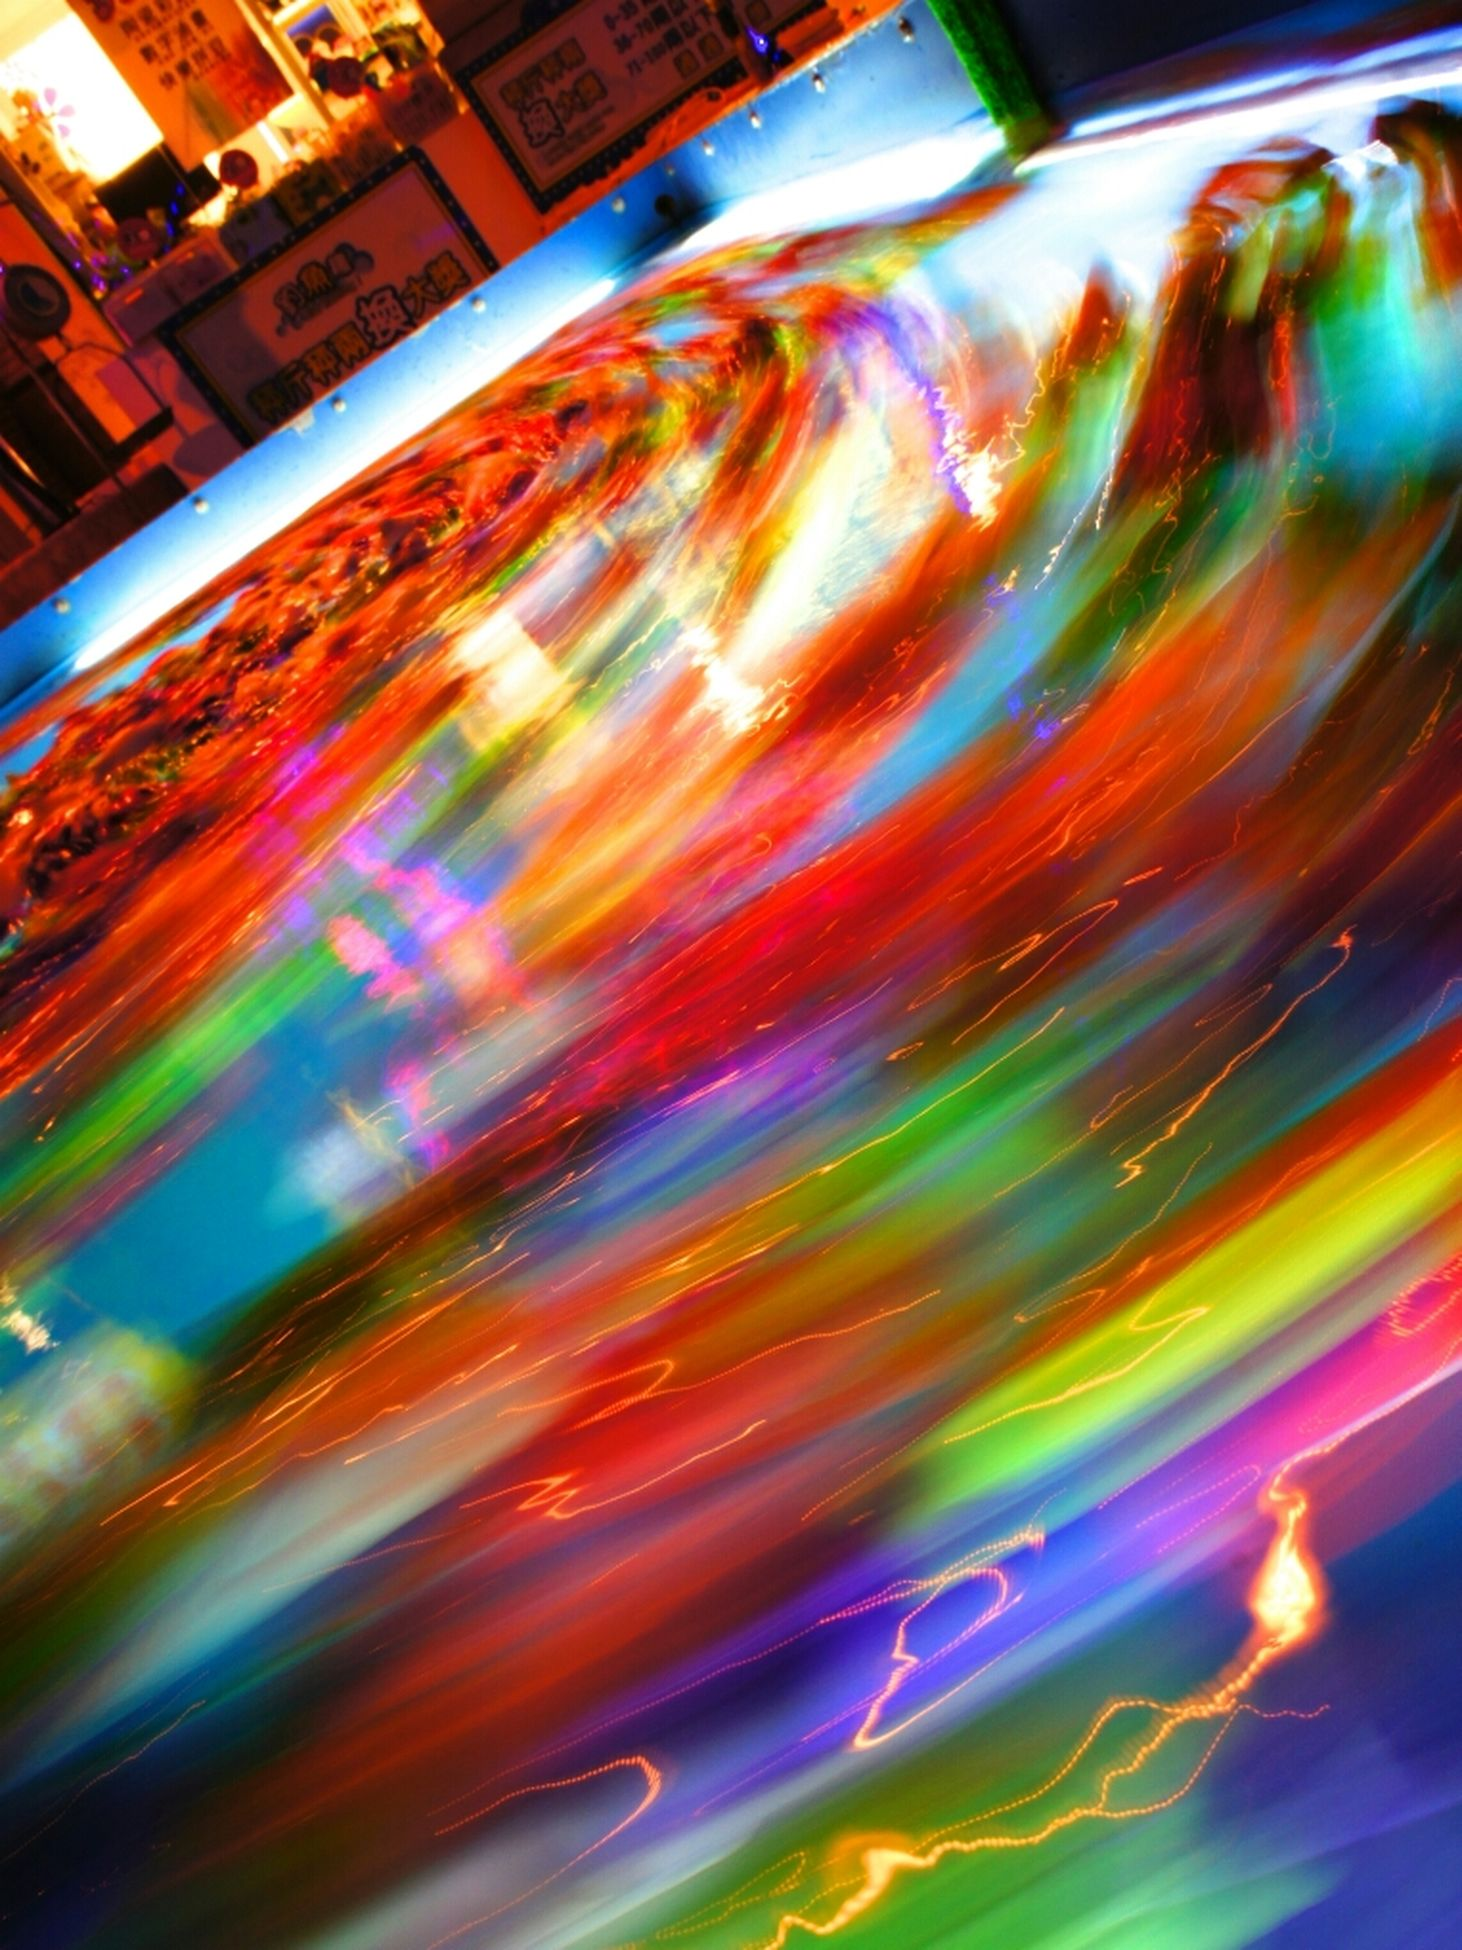 multi colored, long exposure, light trail, motion, illuminated, blurred motion, transportation, full frame, abstract, speed, backgrounds, night, city, car, street, colorful, road, land vehicle, no people, glass - material